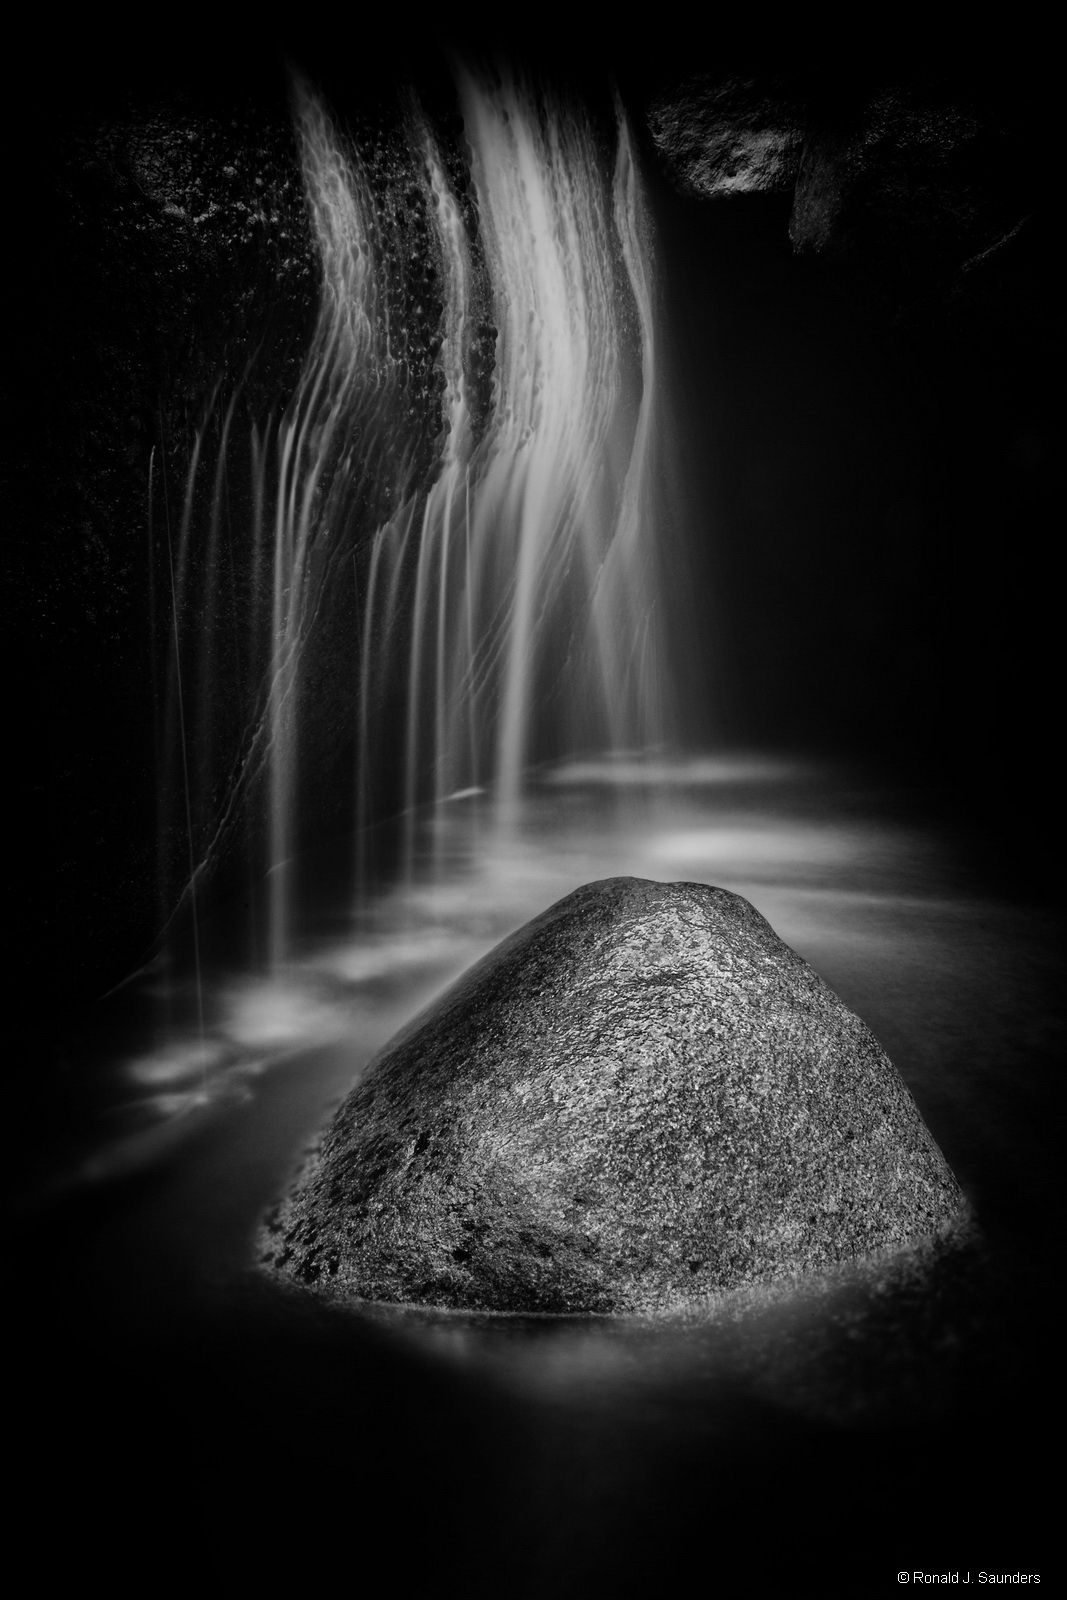 ronald, saunders, yosemite museum CPA, sunset center, carmel, national park, black, white, cascade, creek, falls, landsc, photo